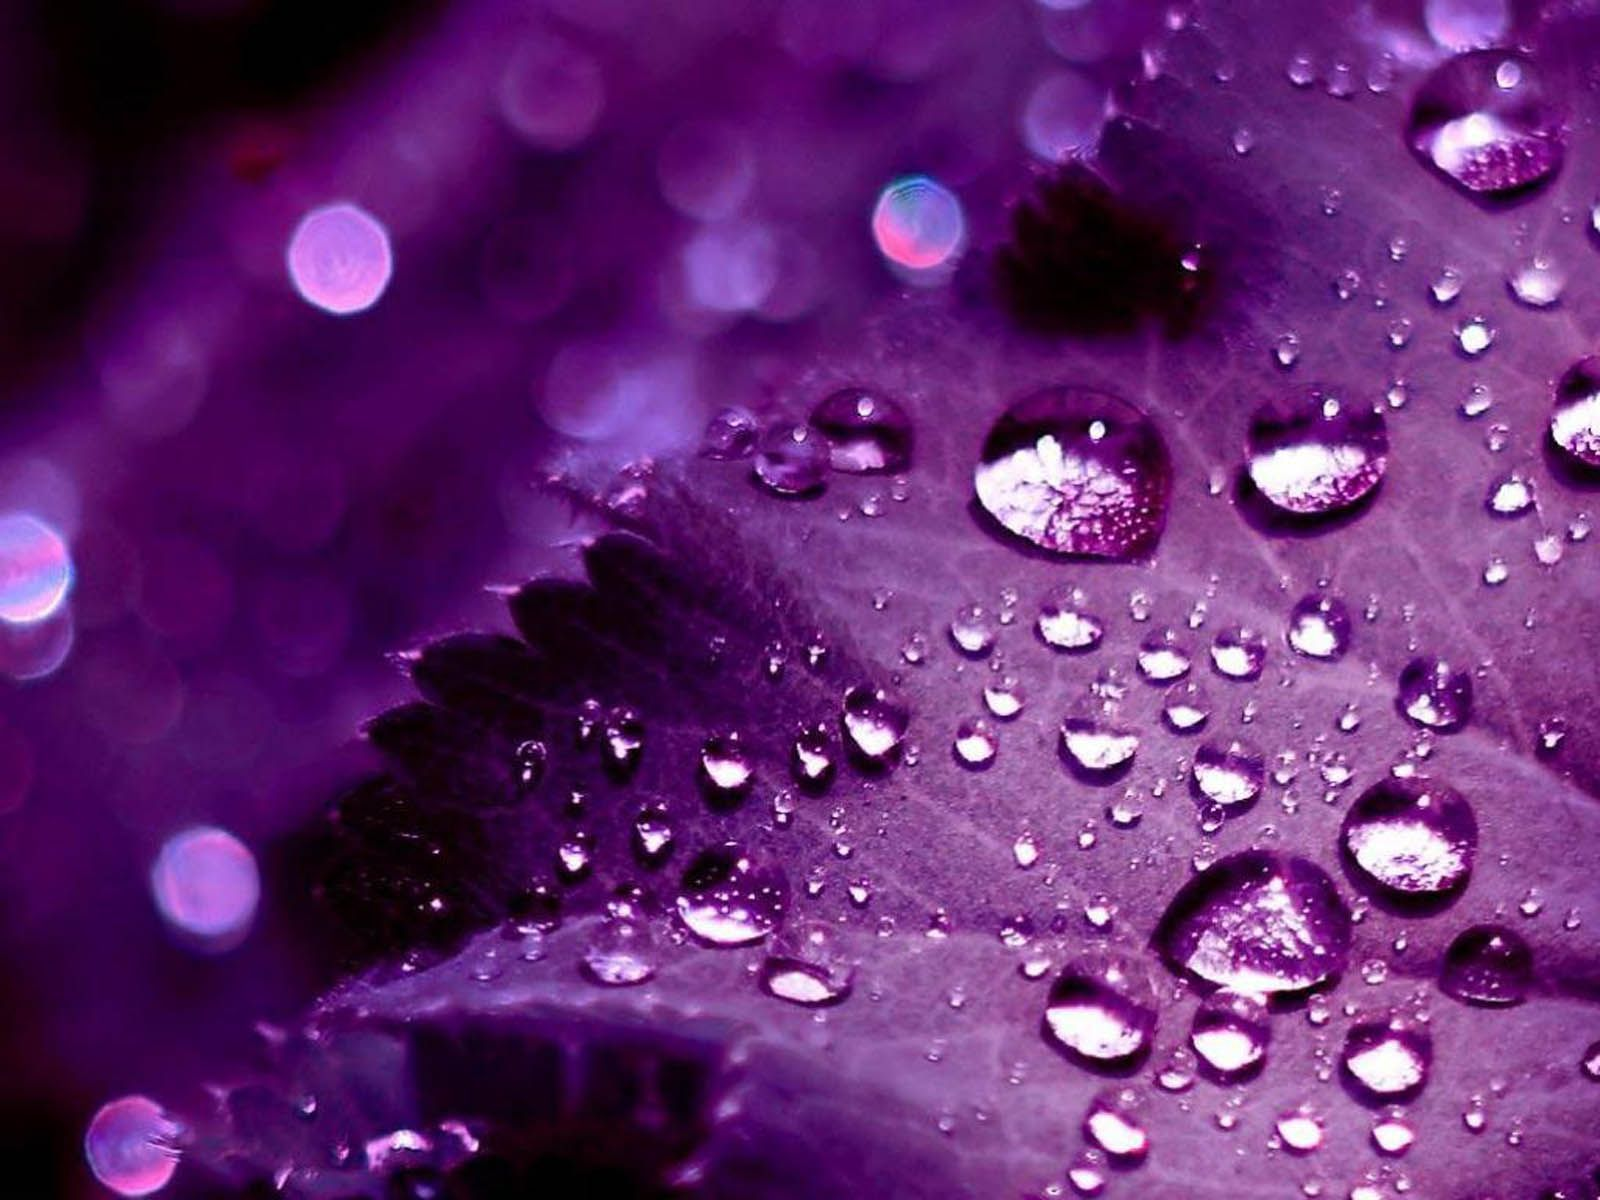 Tumblr iphone wallpaper purple - Wallpapers For Pretty Purple Backgrounds Tumblr 1